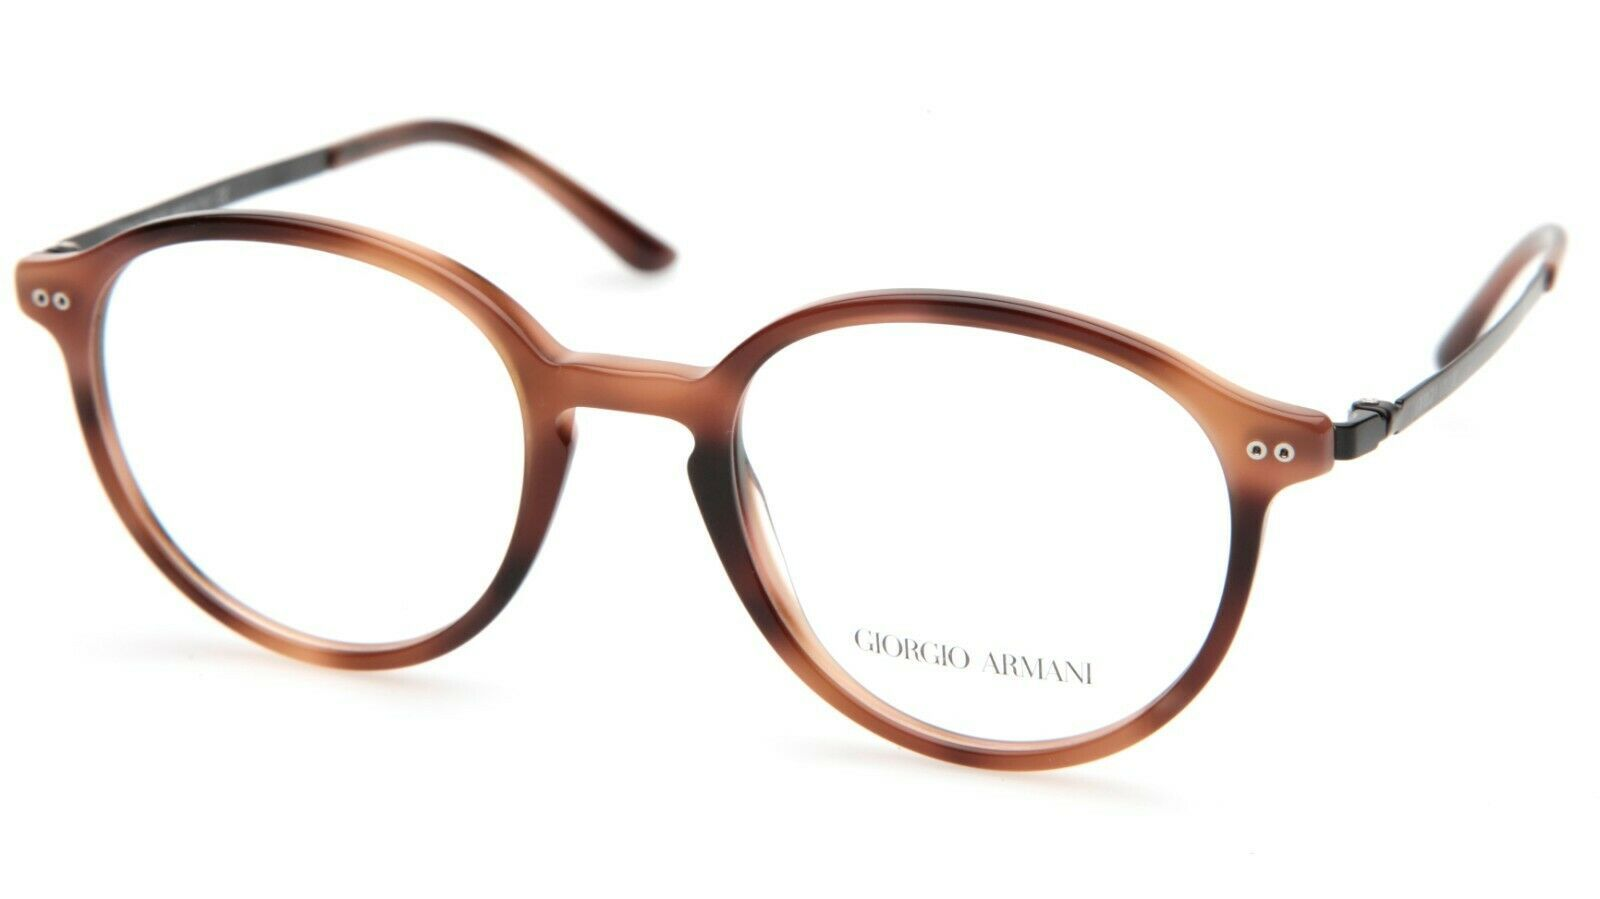 Primary image for New GIORGIO ARMANI AR7124 5574 Havana EYEGLASSES FRAME 49-20-145mm B44mm Italy